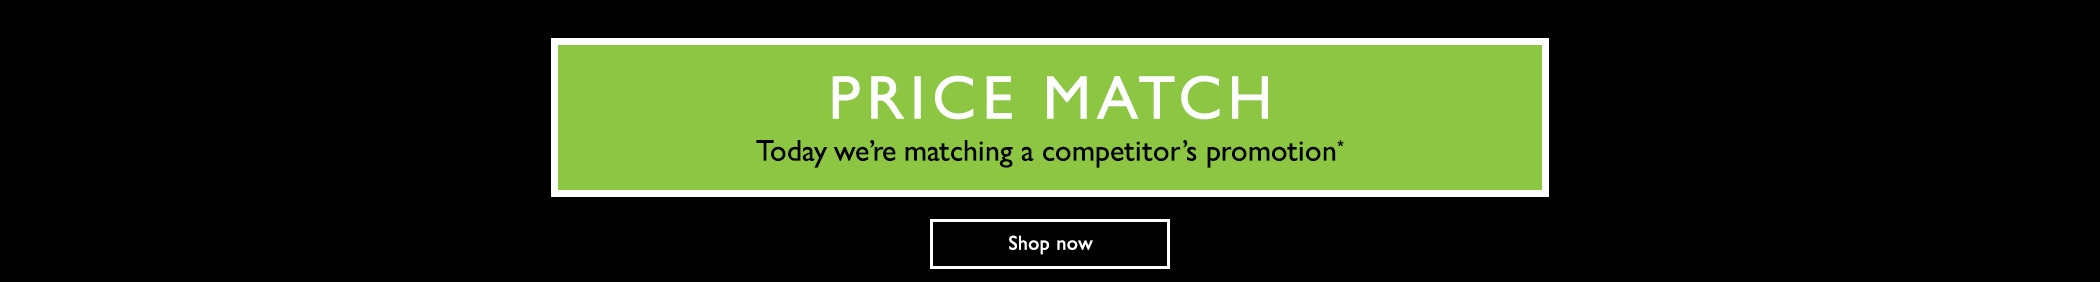 Price MAtch - Today we're matching a competitor's promotion - Shop now